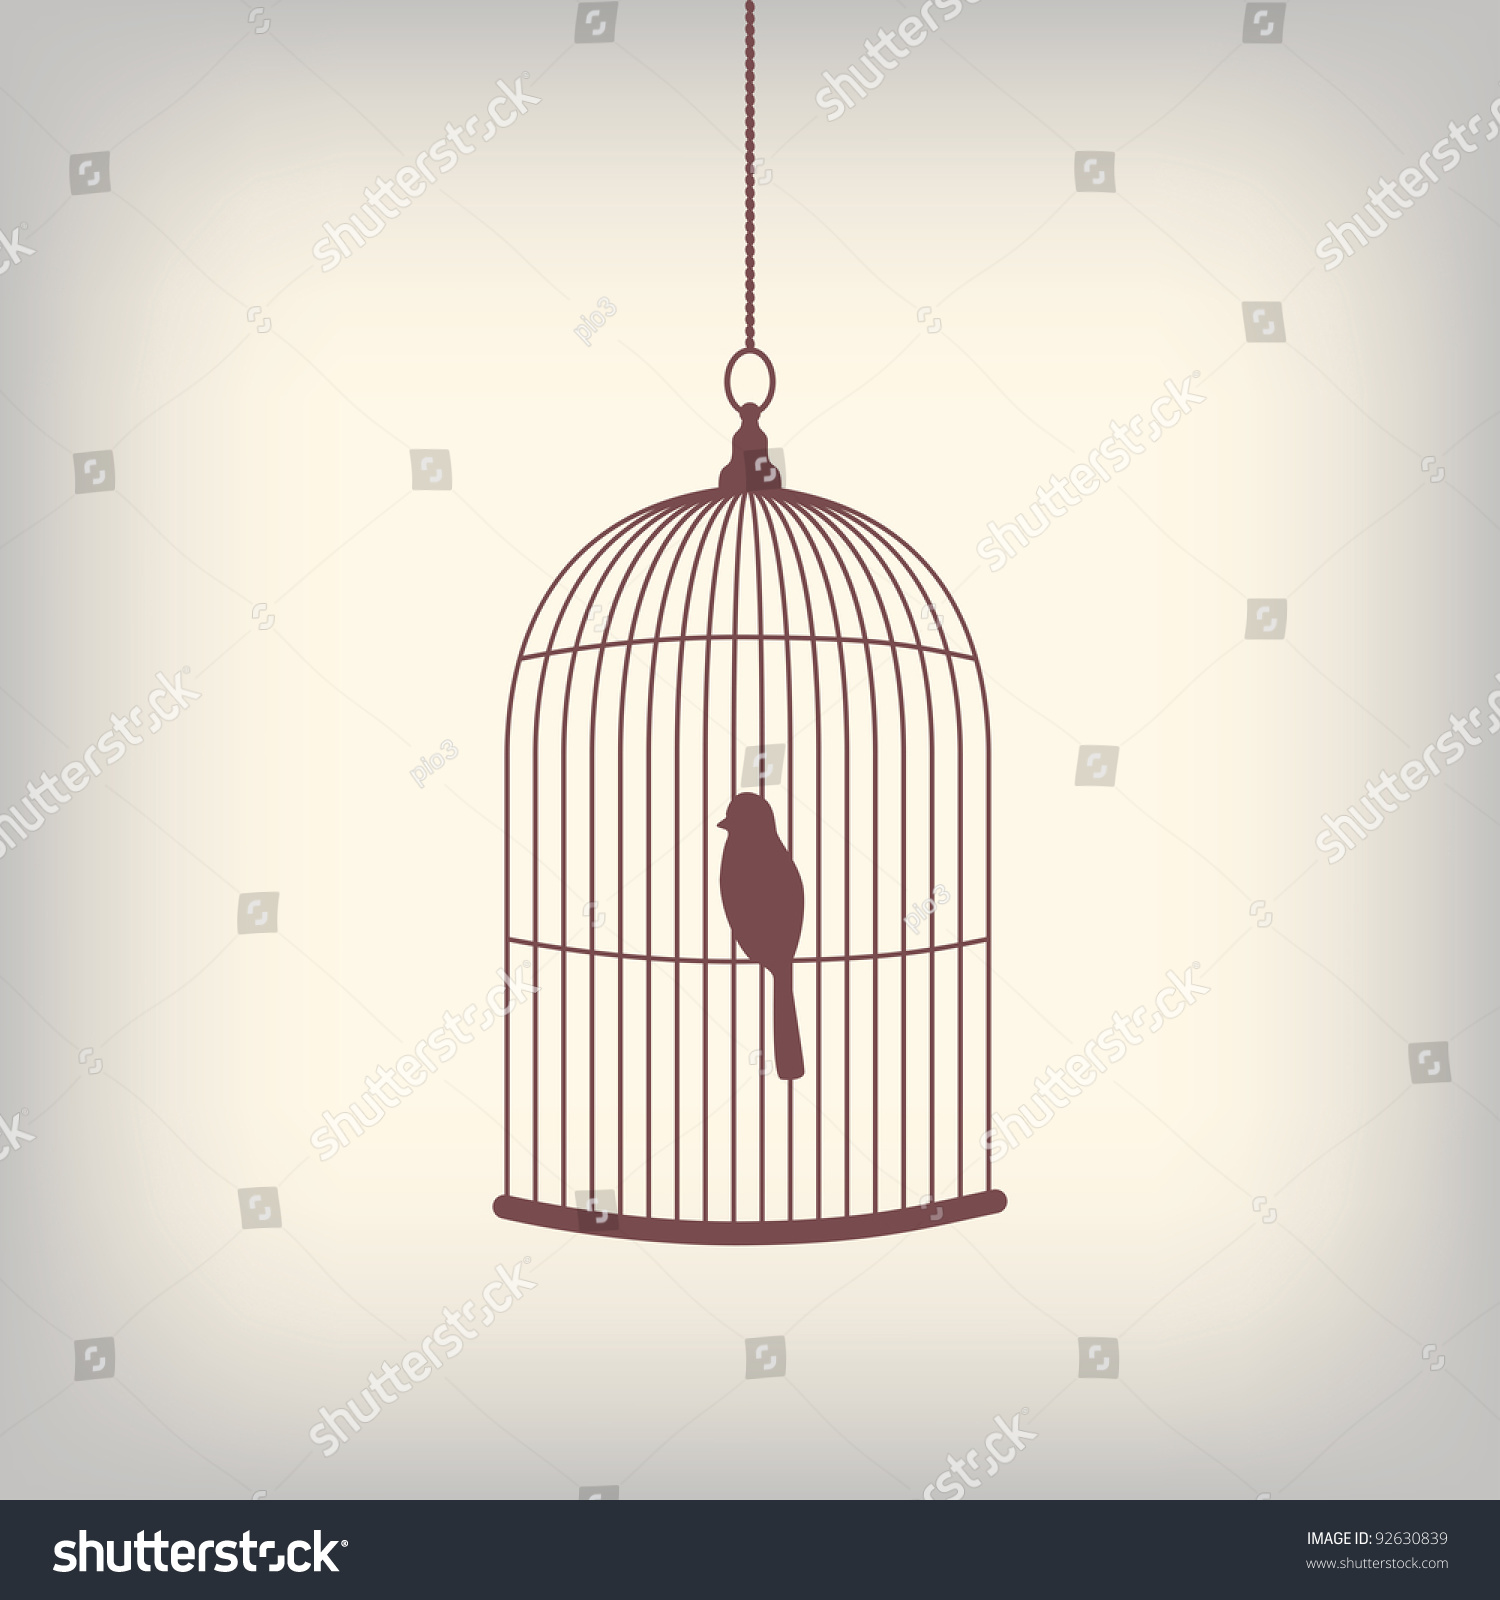 Birdcage Vectors Photos and PSD files  Free Download